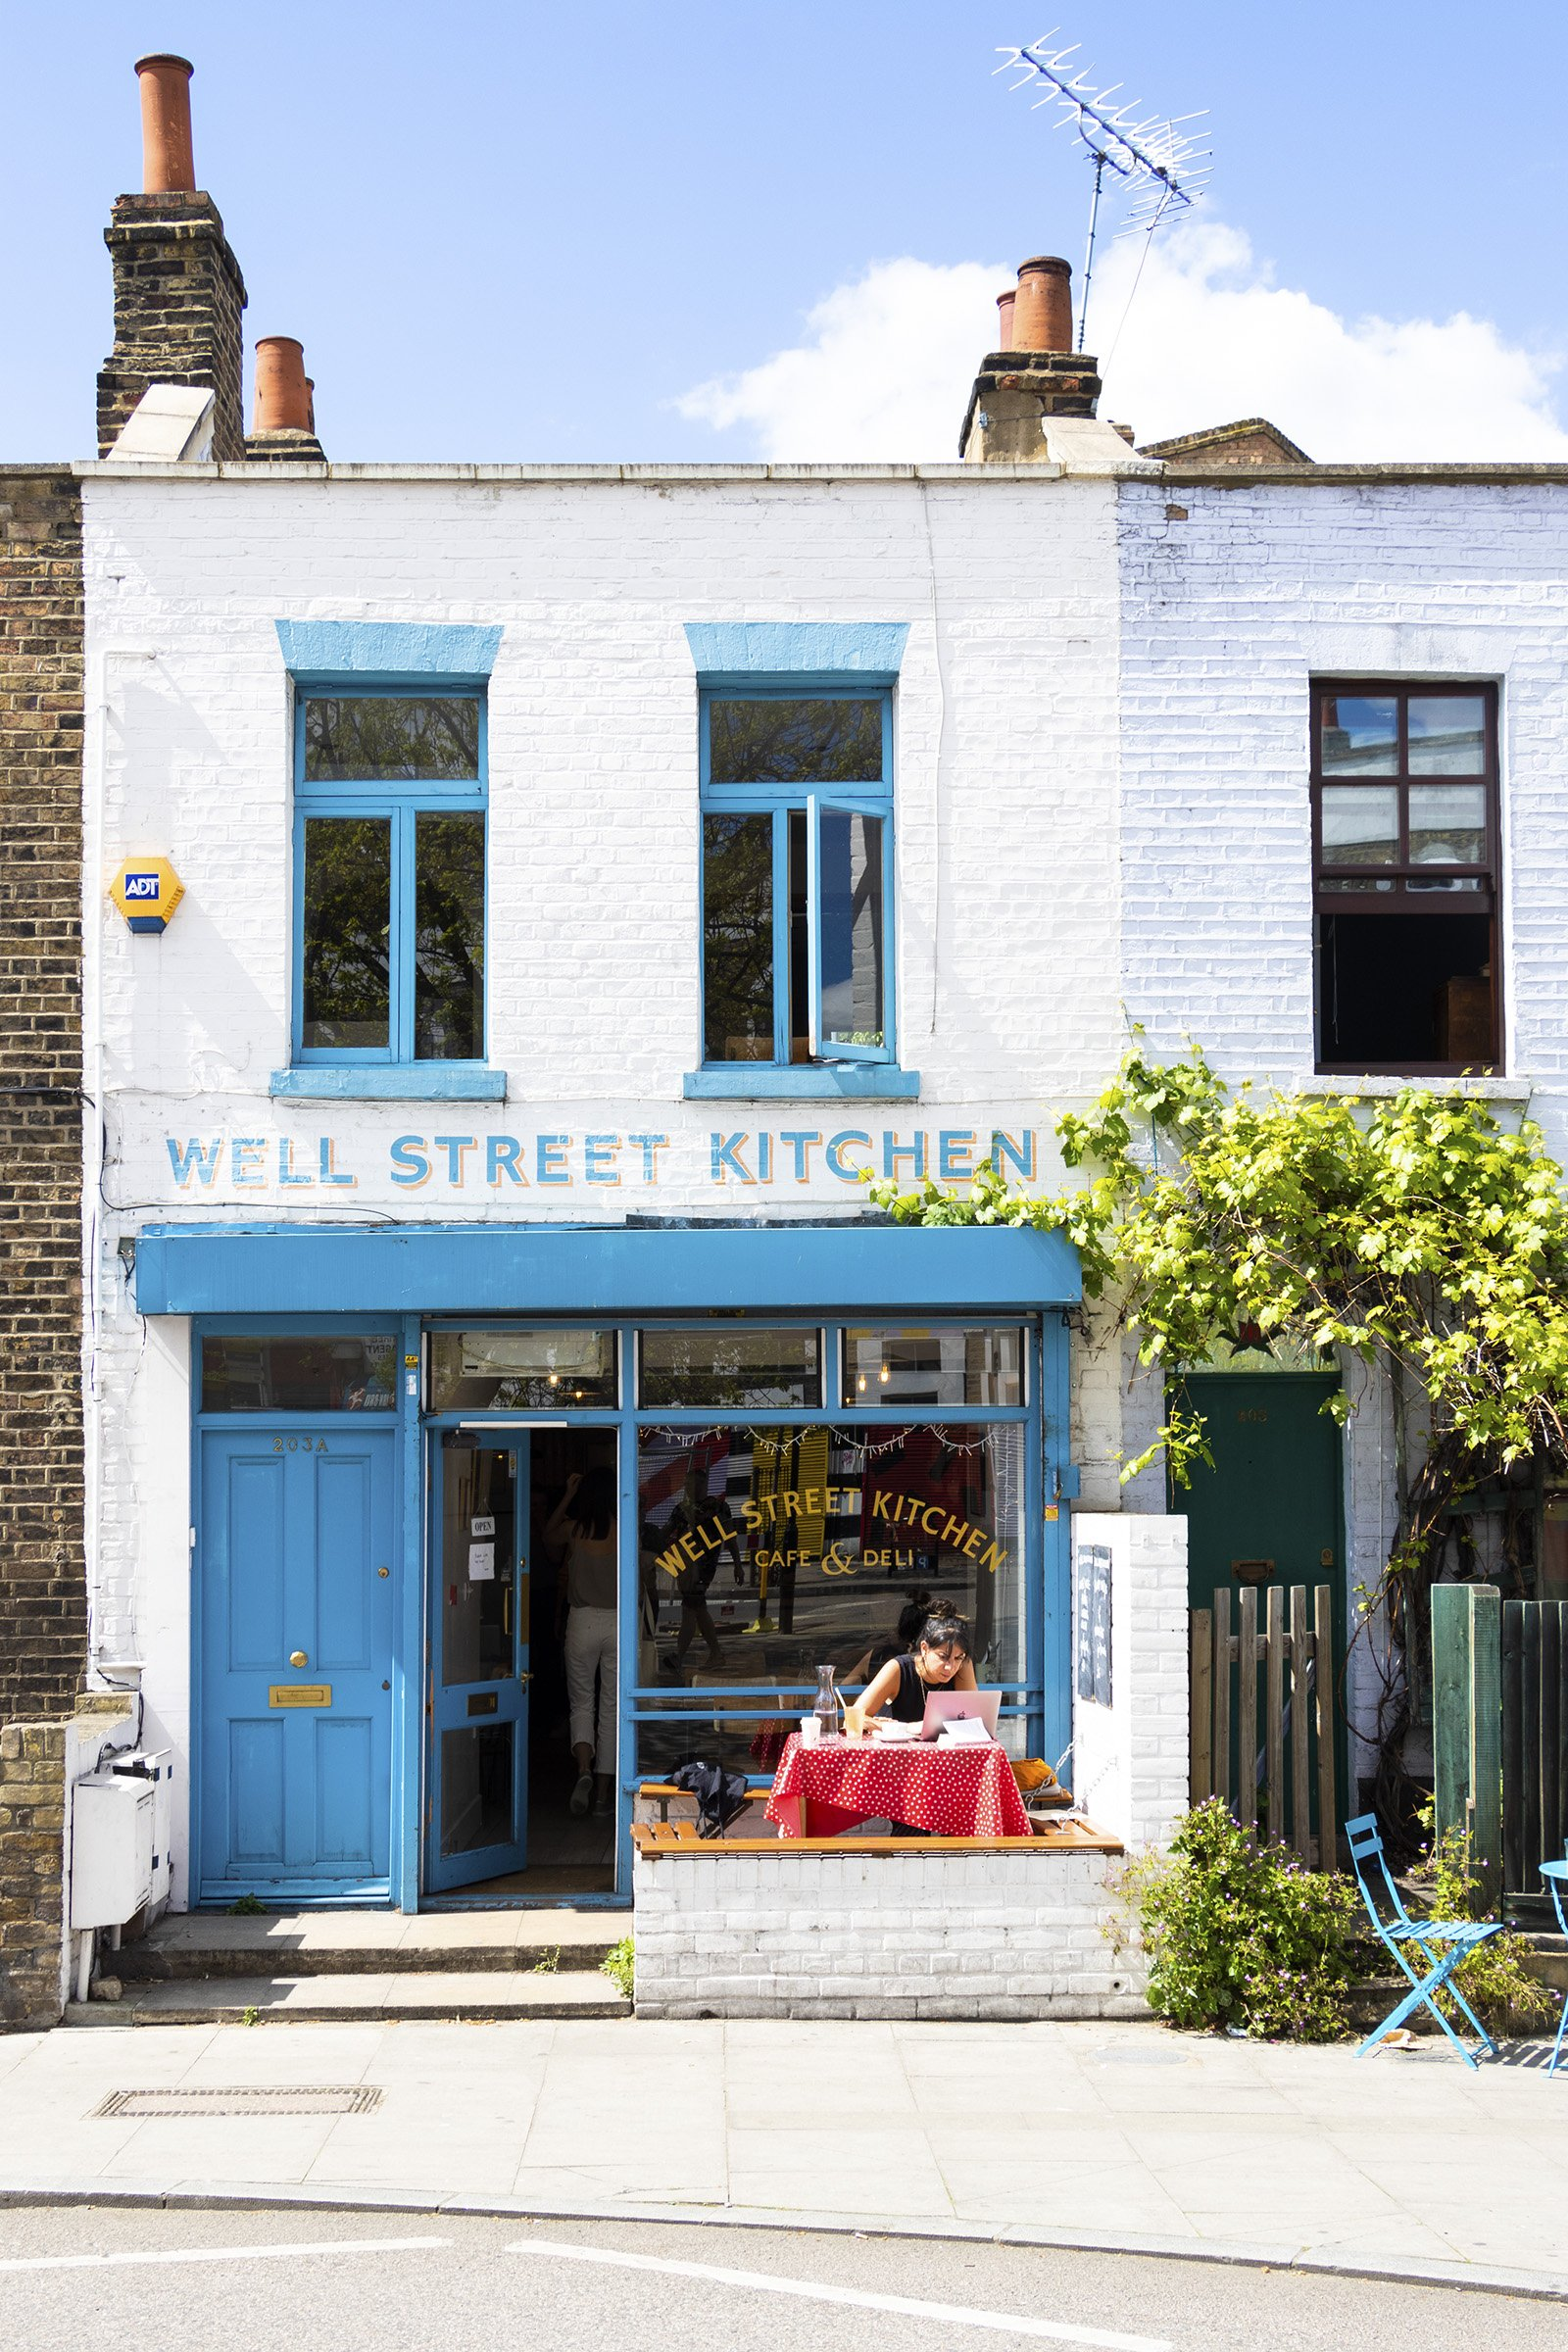 Well Street Kitchen, Hackney outside